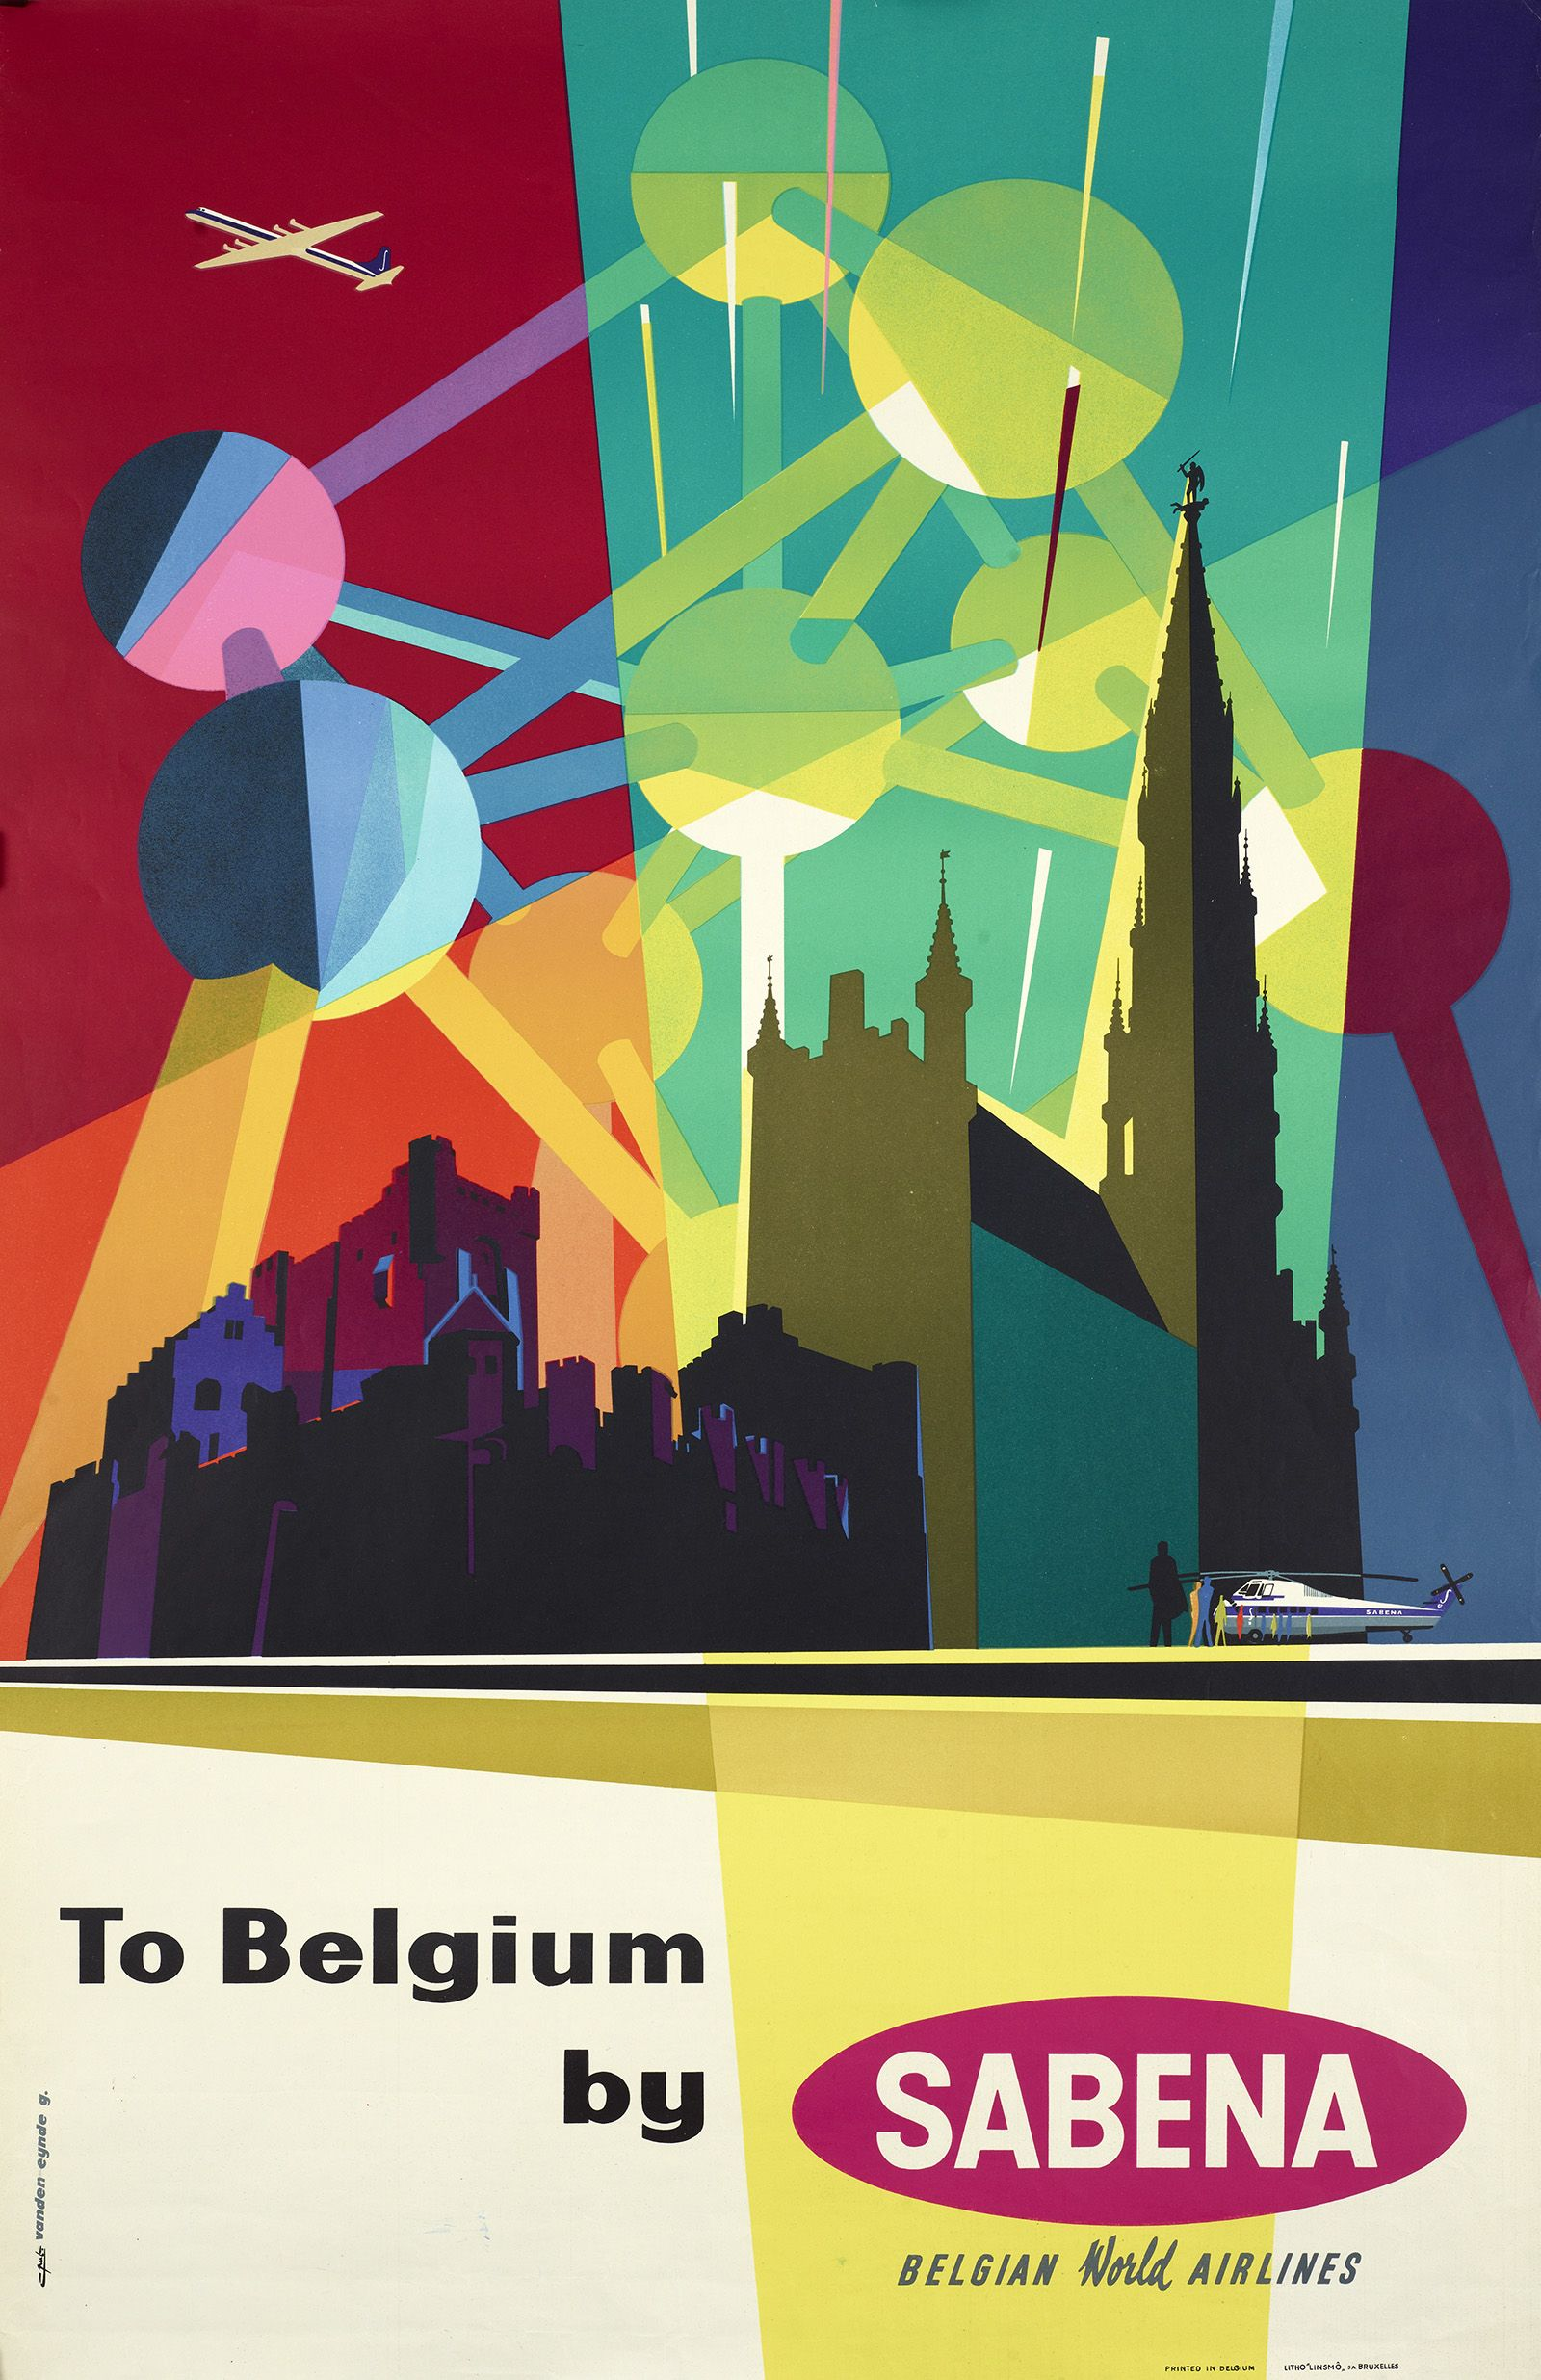 sabena belgian world airlines Sabena summer timetable april - october 1998 belgian world airlines seat maps sabena belgian - $1007 sabena belgian world airlines timetable 1986 with business class seat plans.